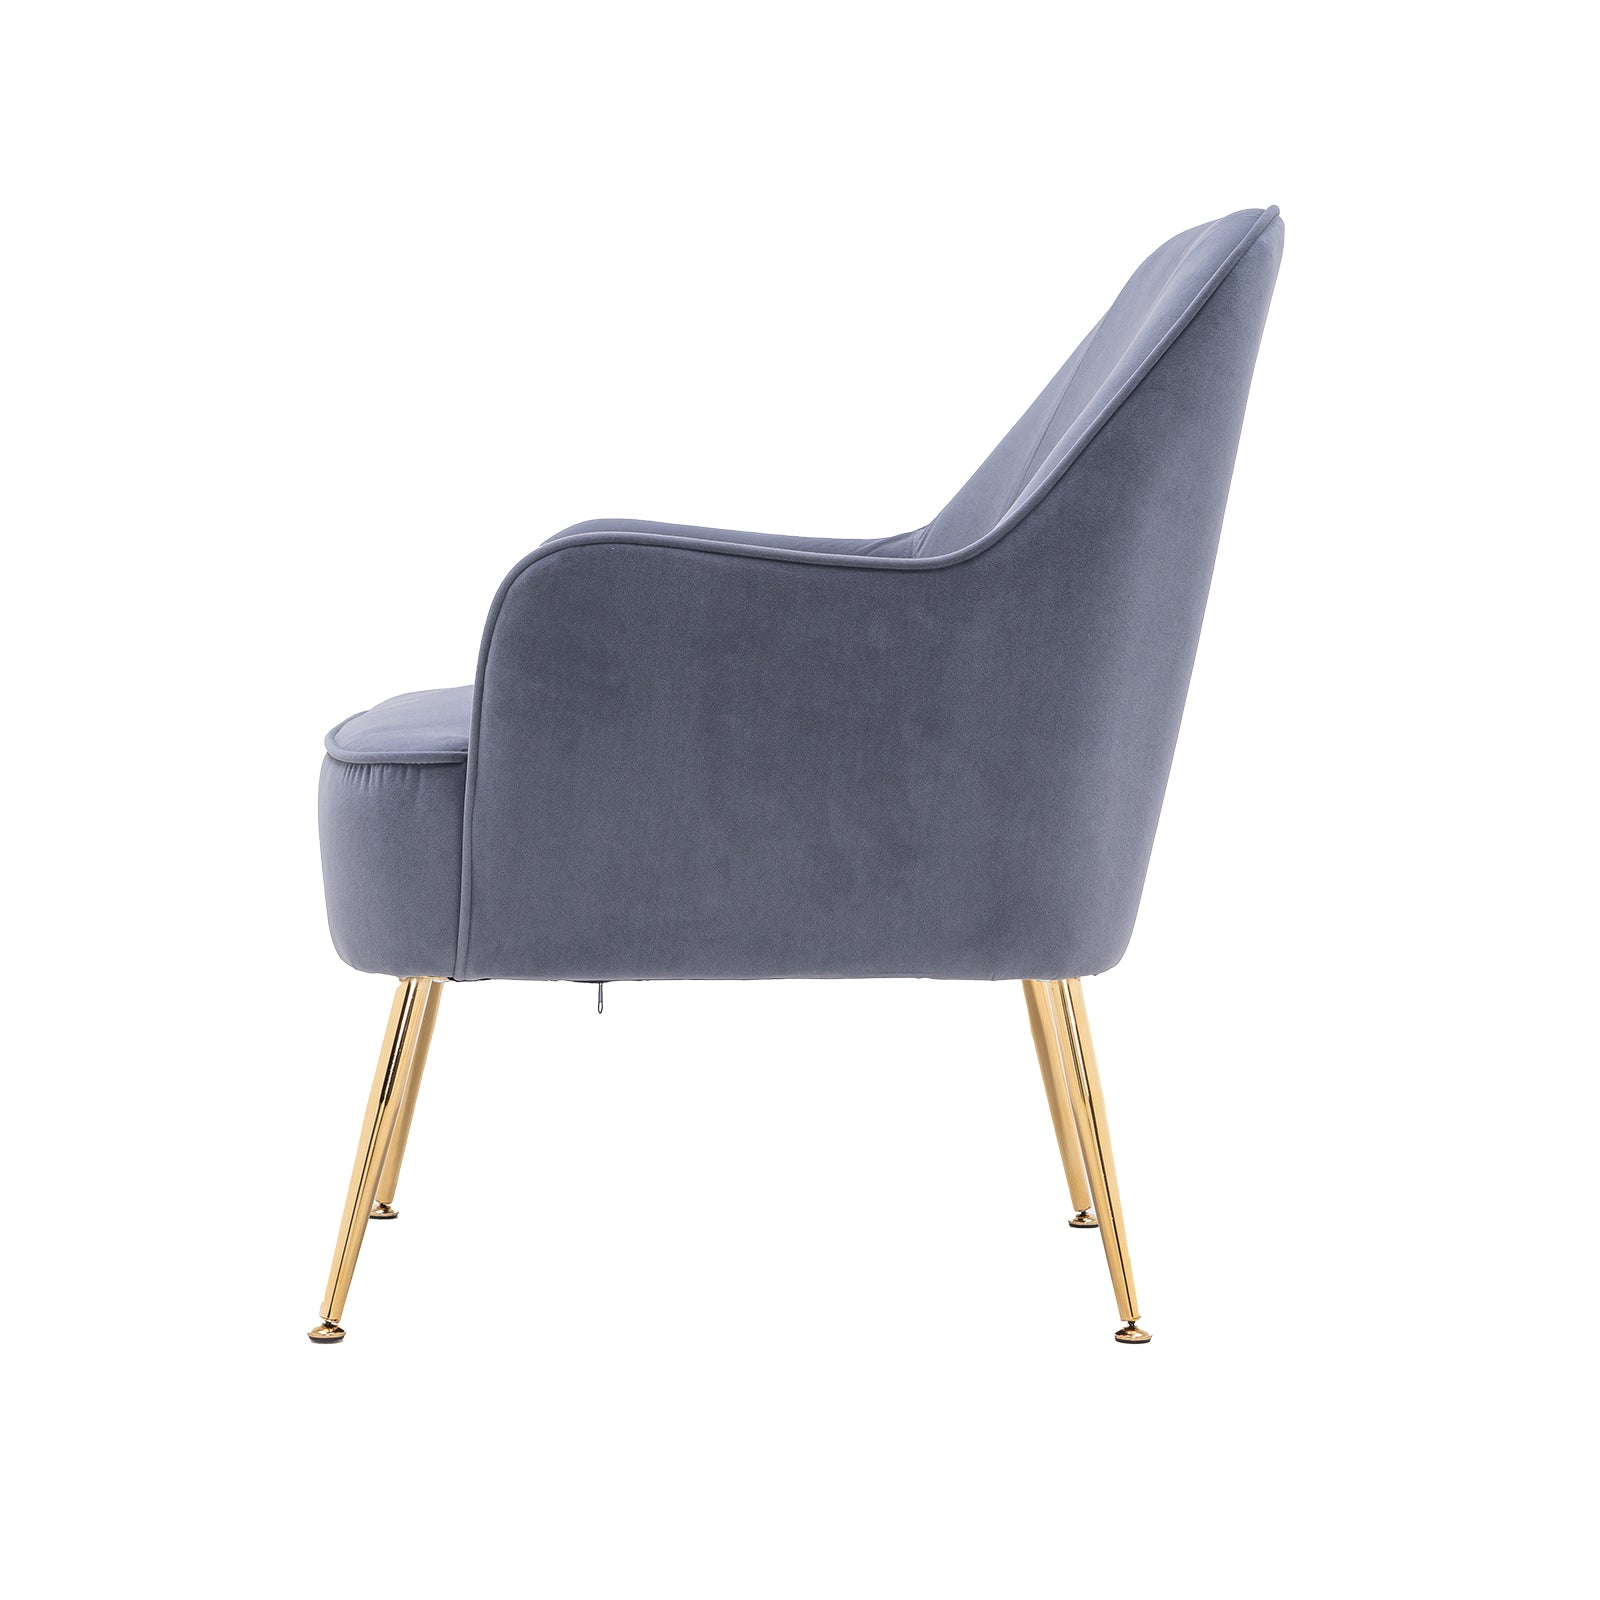 Dim Gray Velvet Accent Chair With Gold Metal Legs BH5272484 BHW5272815